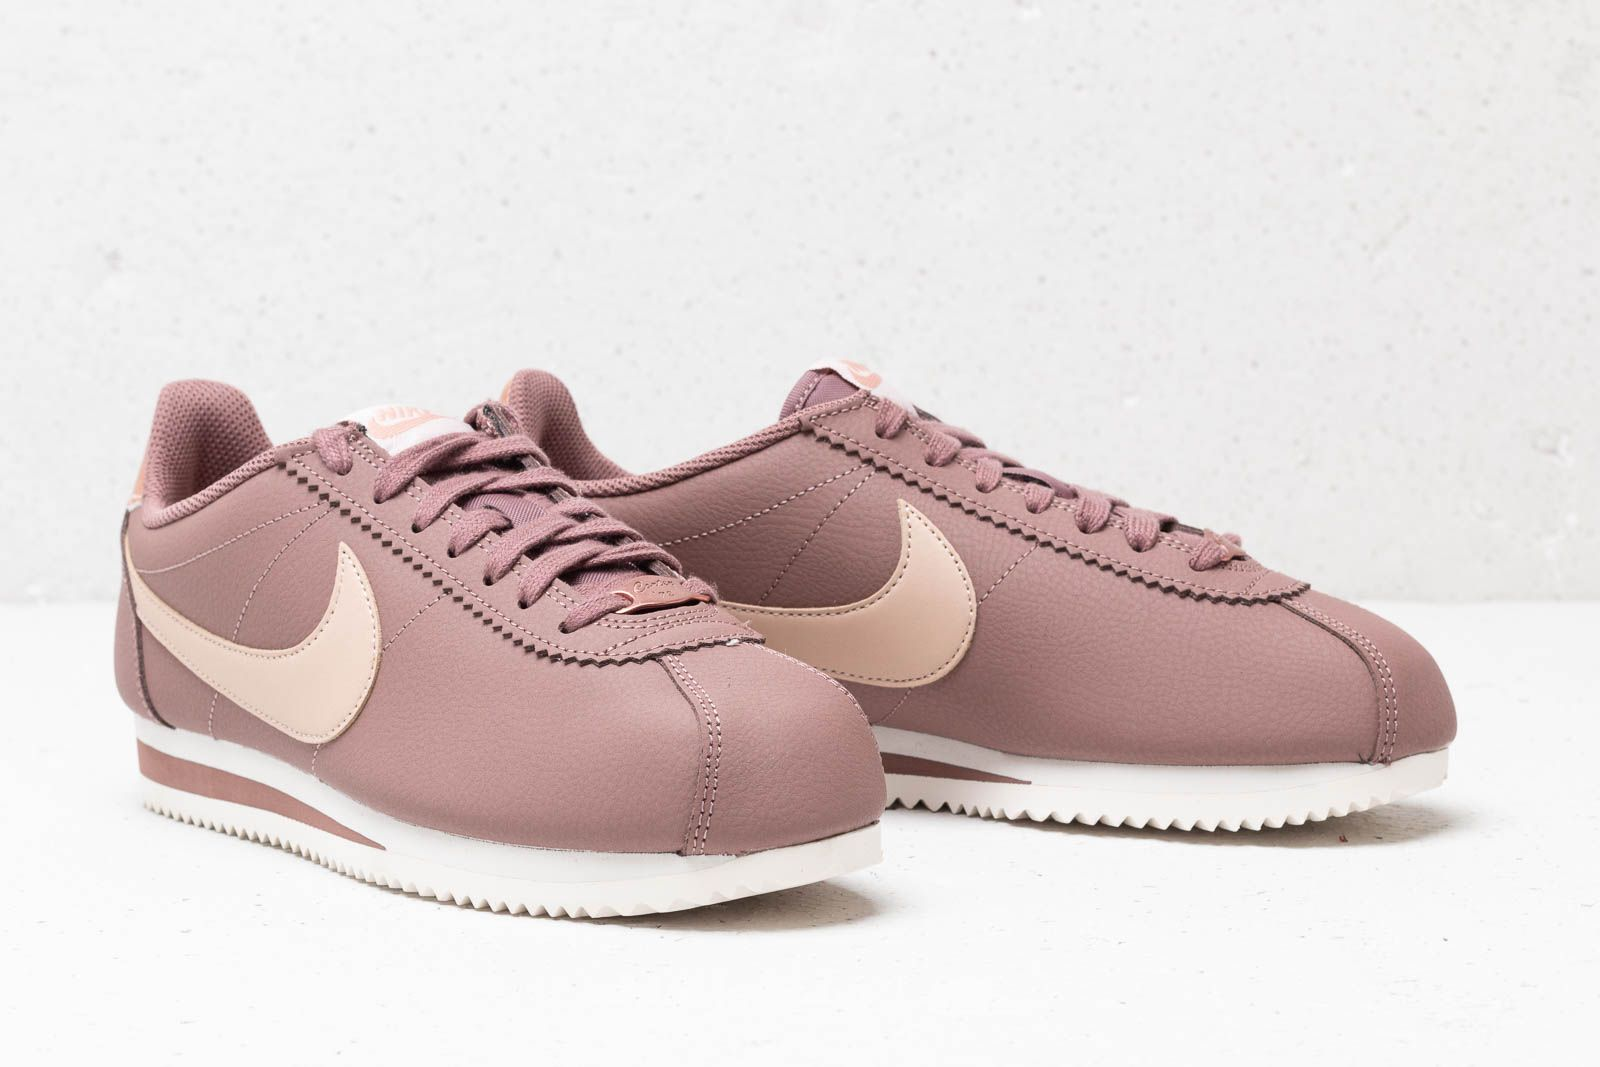 newest 857bc 6a010 Nike Classic Cortez Leather Wmns Smokey Mauve/ Particle ...